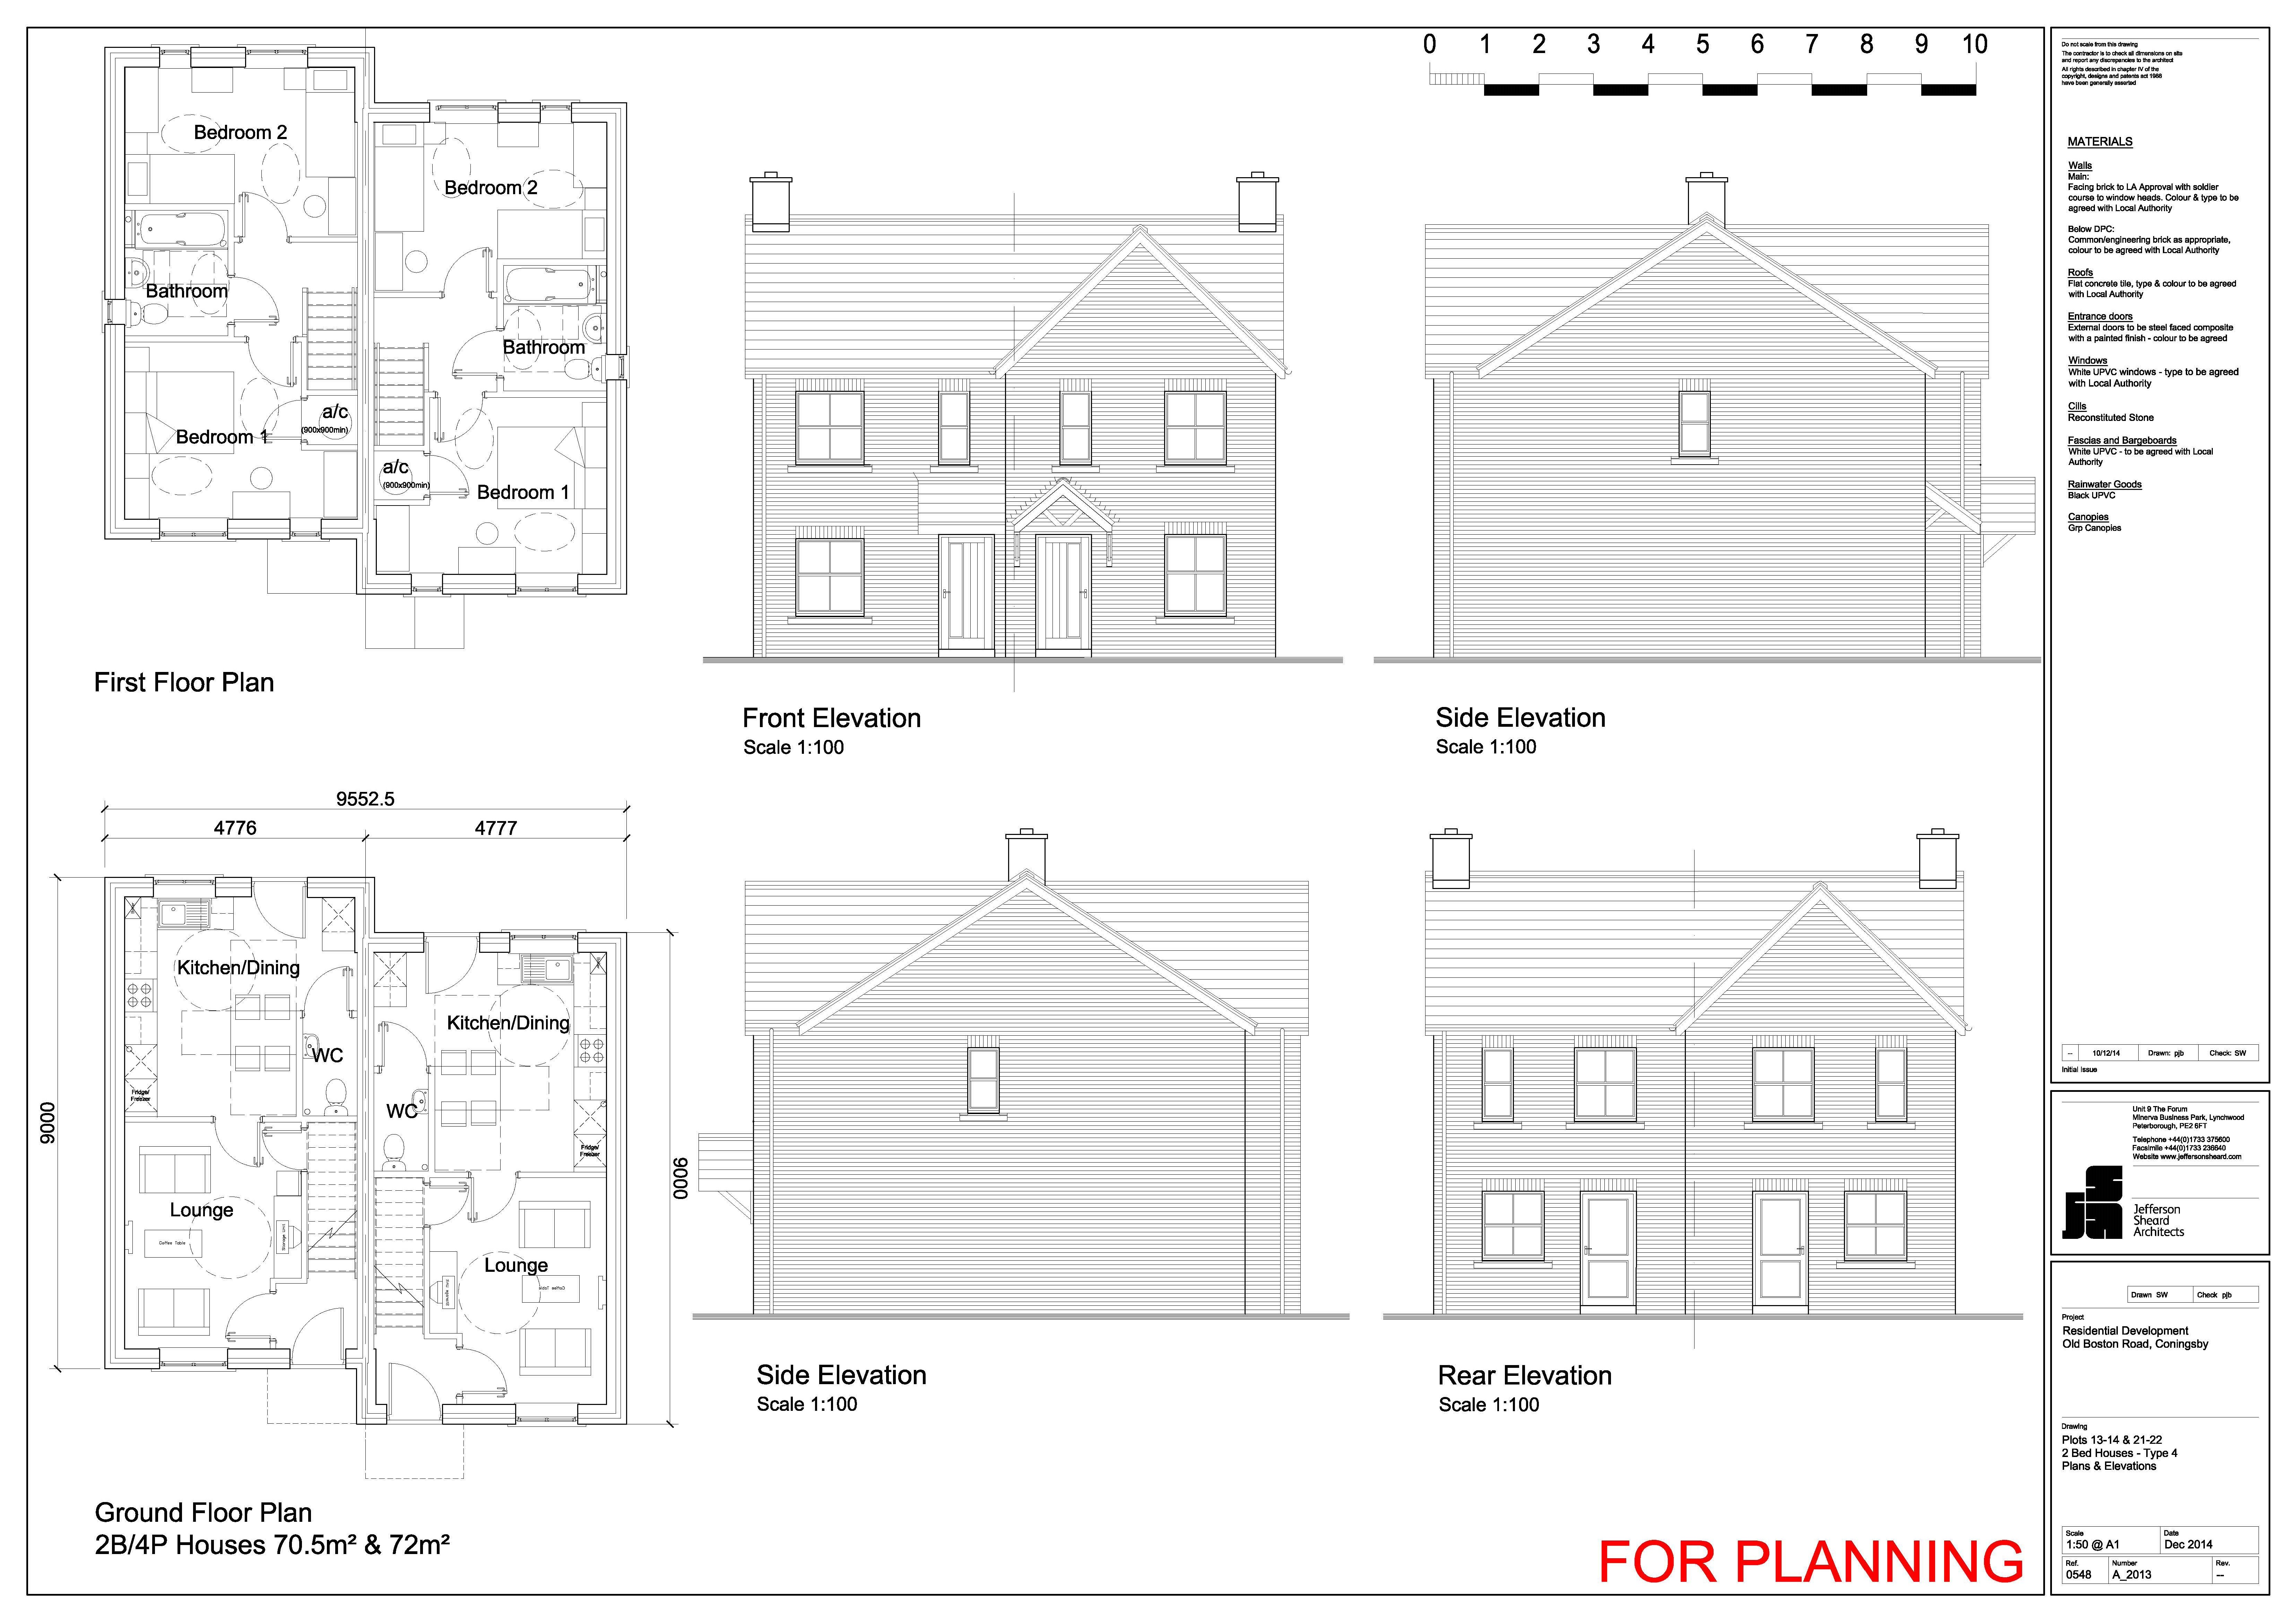 old-boston-road-2-bed-plots-2122